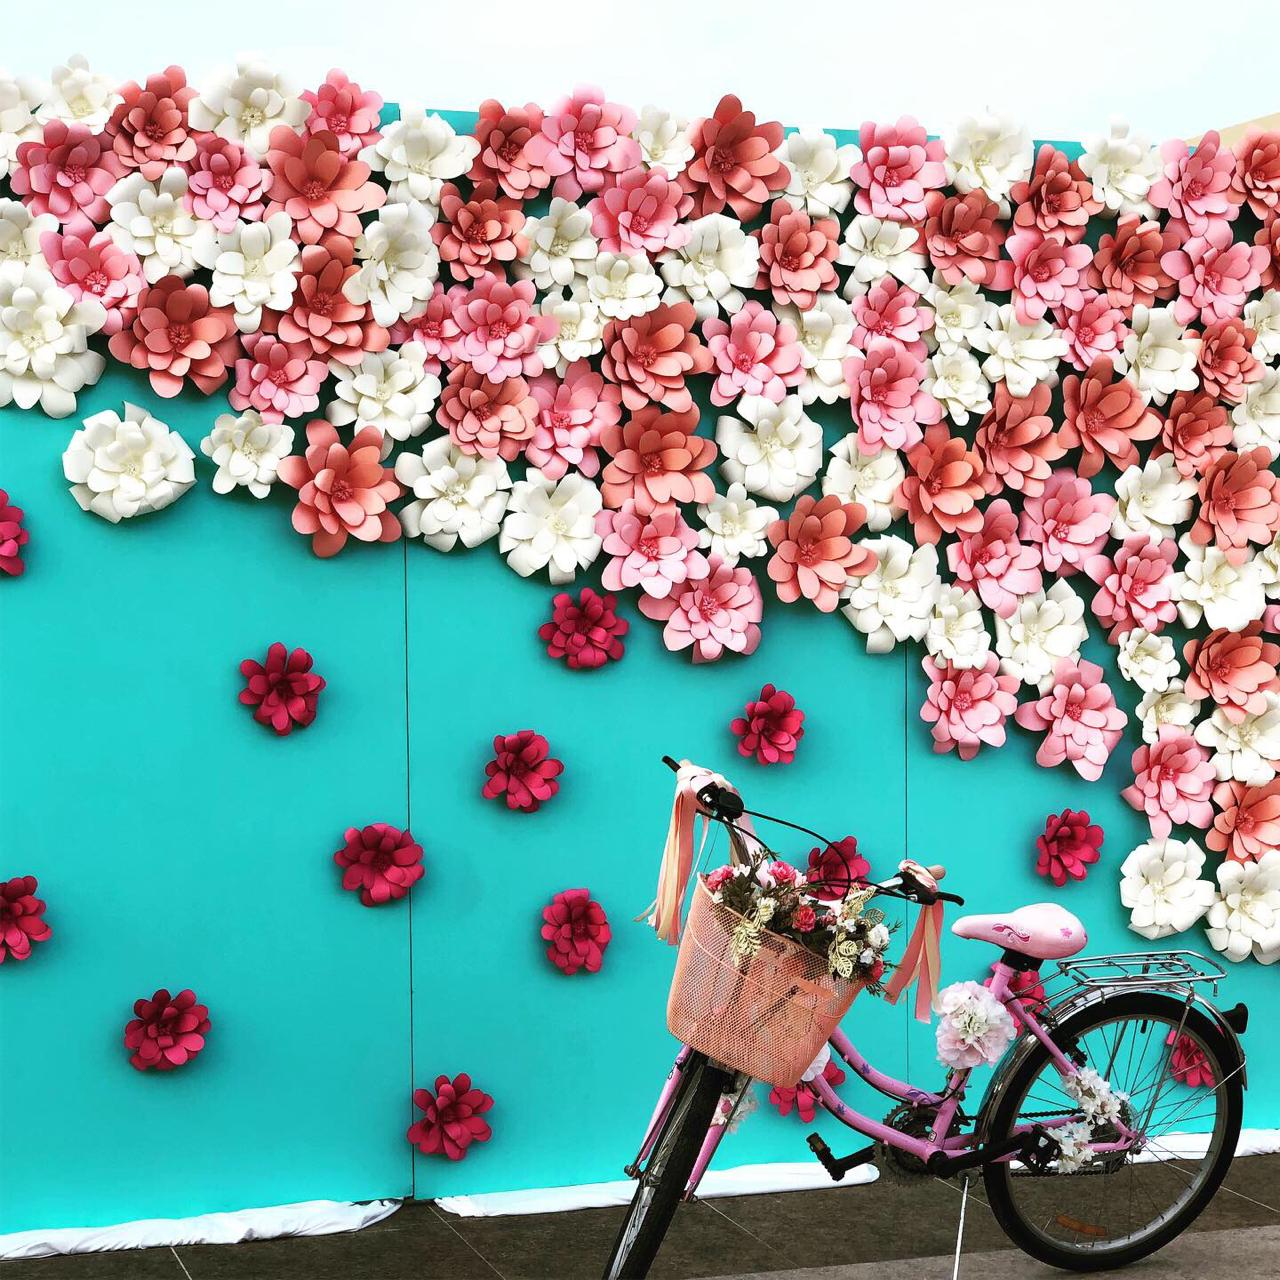 Floral Wall And Bike Backdro